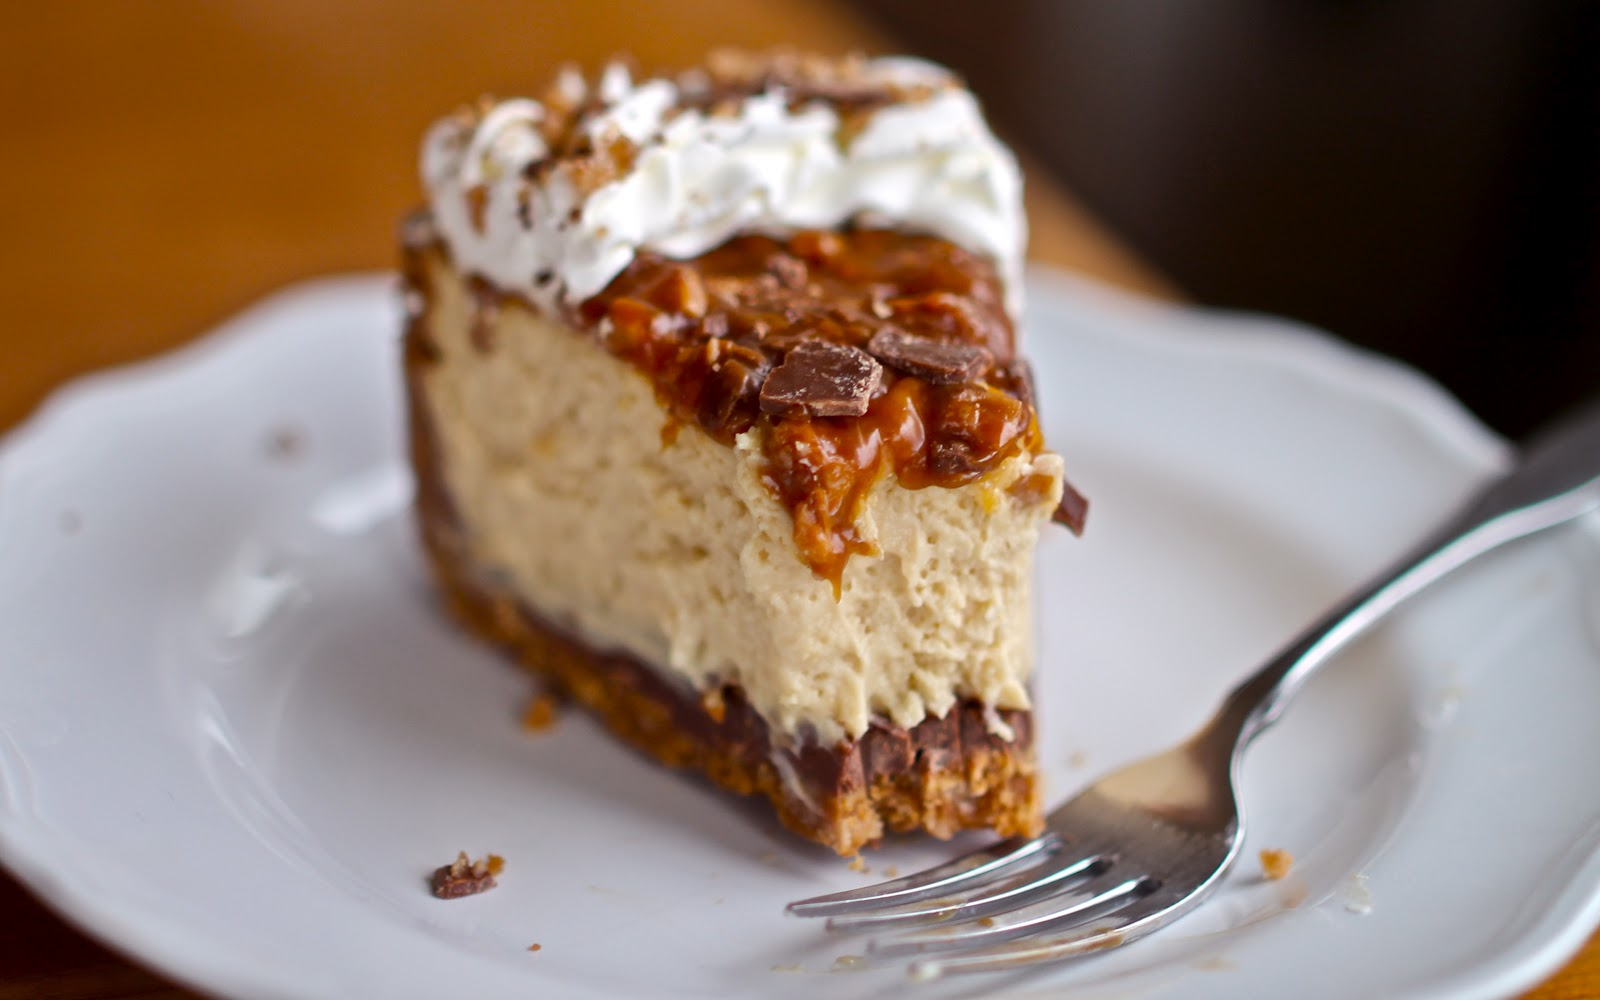 Caramel Pecan Crunch Cake Recipe